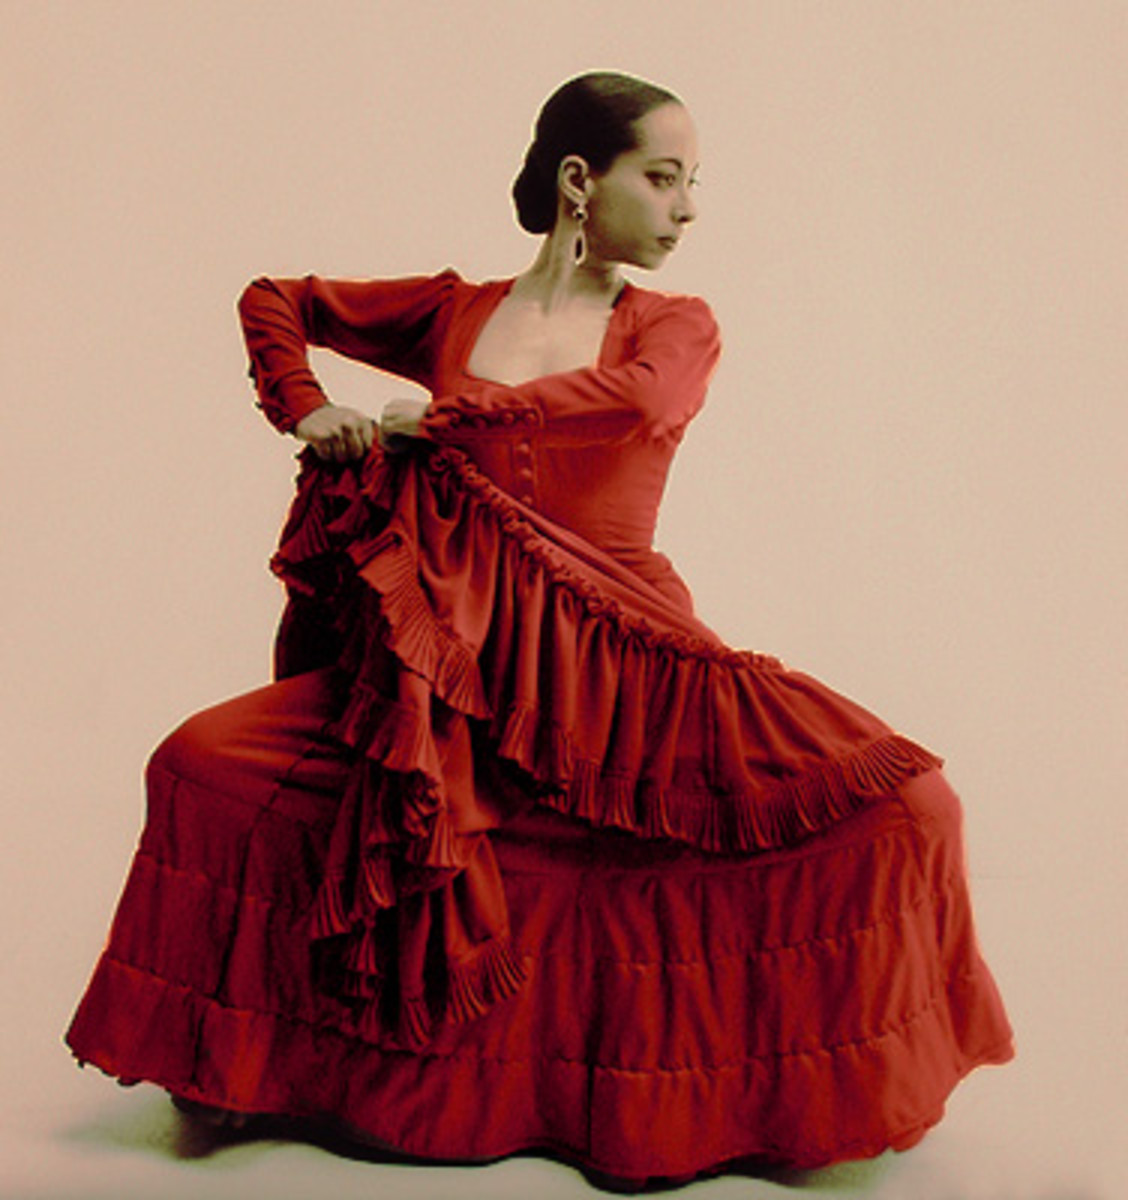 The art of Flamenco - Spain's folk dance, song and guitar